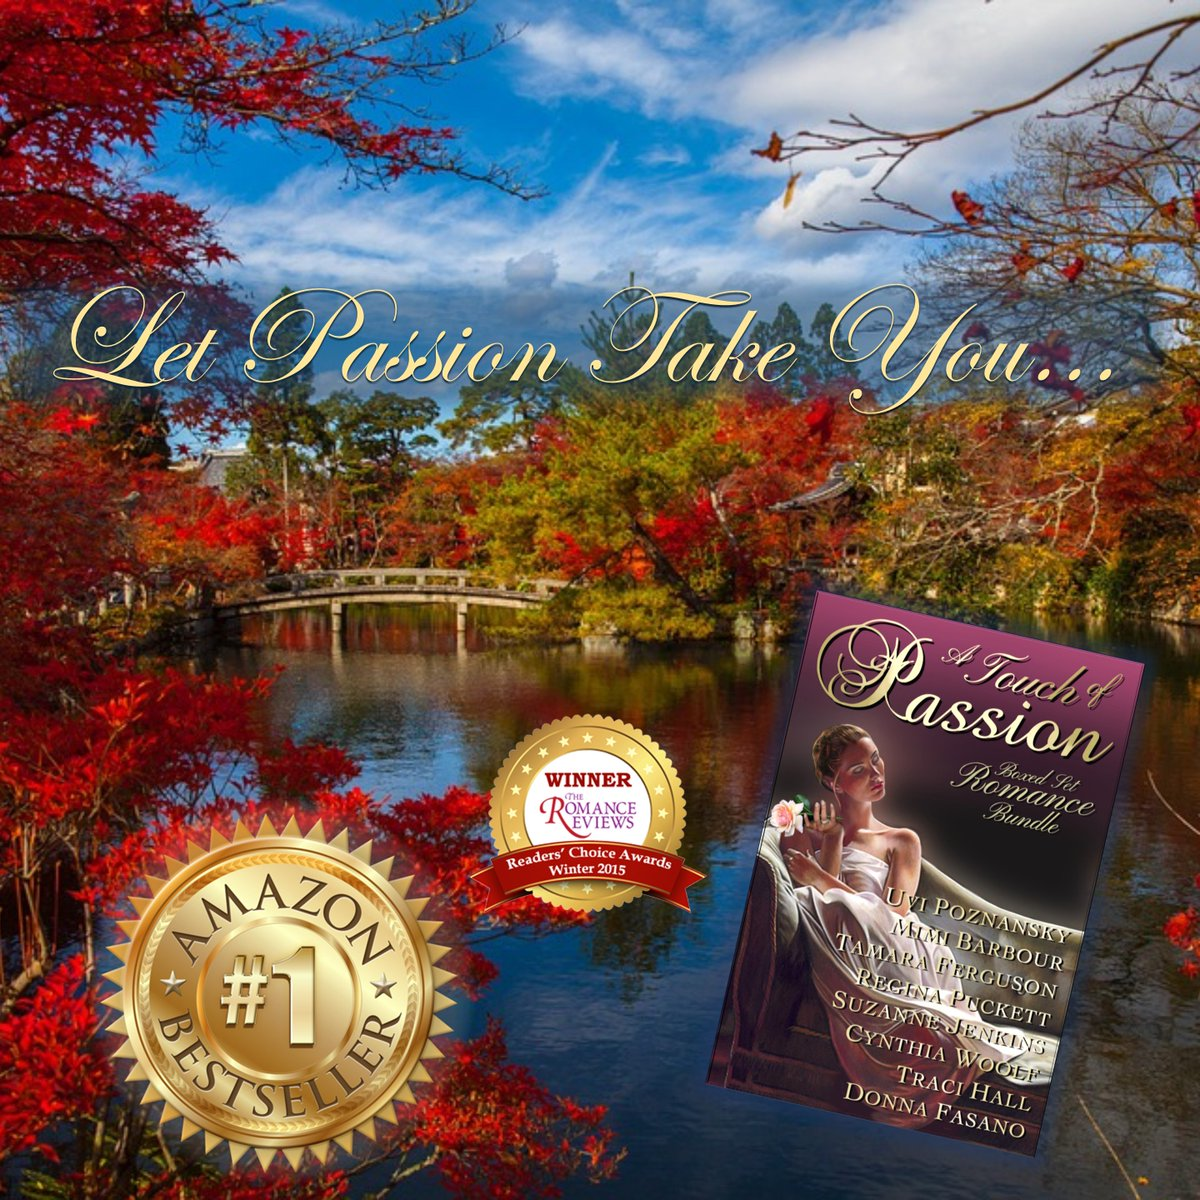 #1 #Holiday #BestSeller on Amazon Let Passion Take YOU A TOUCH OF PASSION IT&#39;S #99c #Atop  http:// BookShow.me/B017DVII20  &nbsp;  <br>http://pic.twitter.com/2s5rF4bU8O